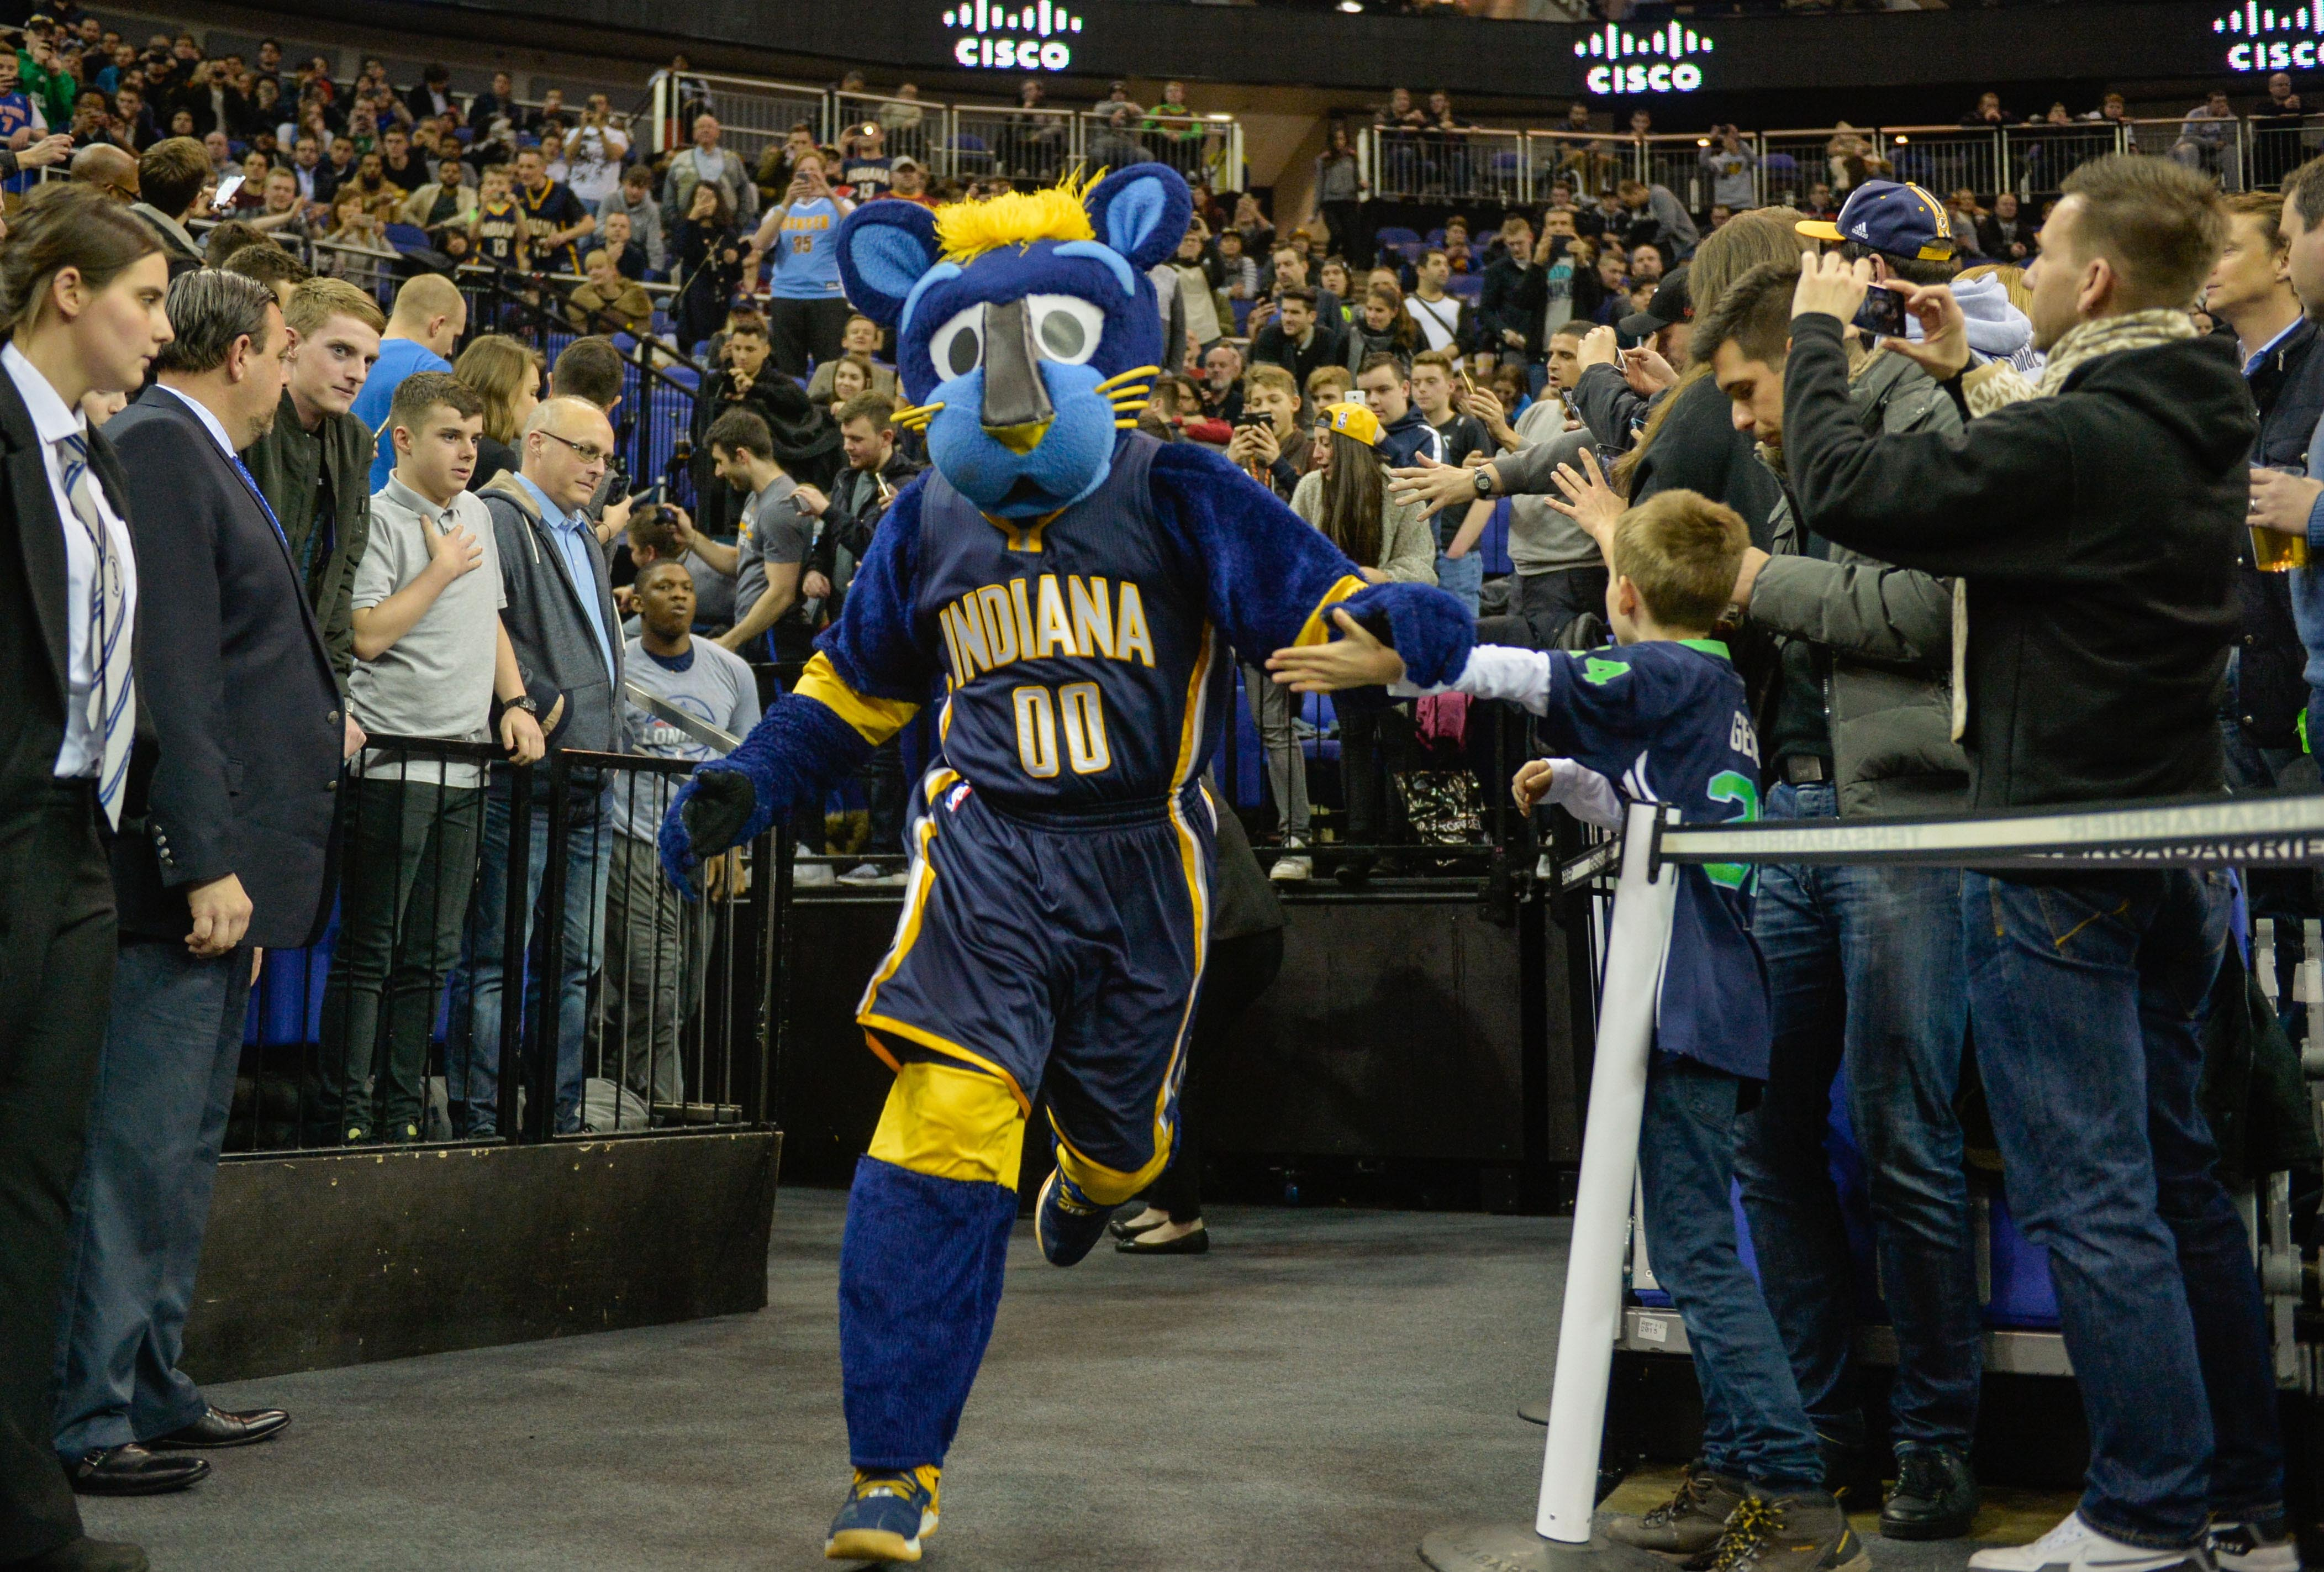 9806178-nba-indiana-pacers-at-denver-nuggets